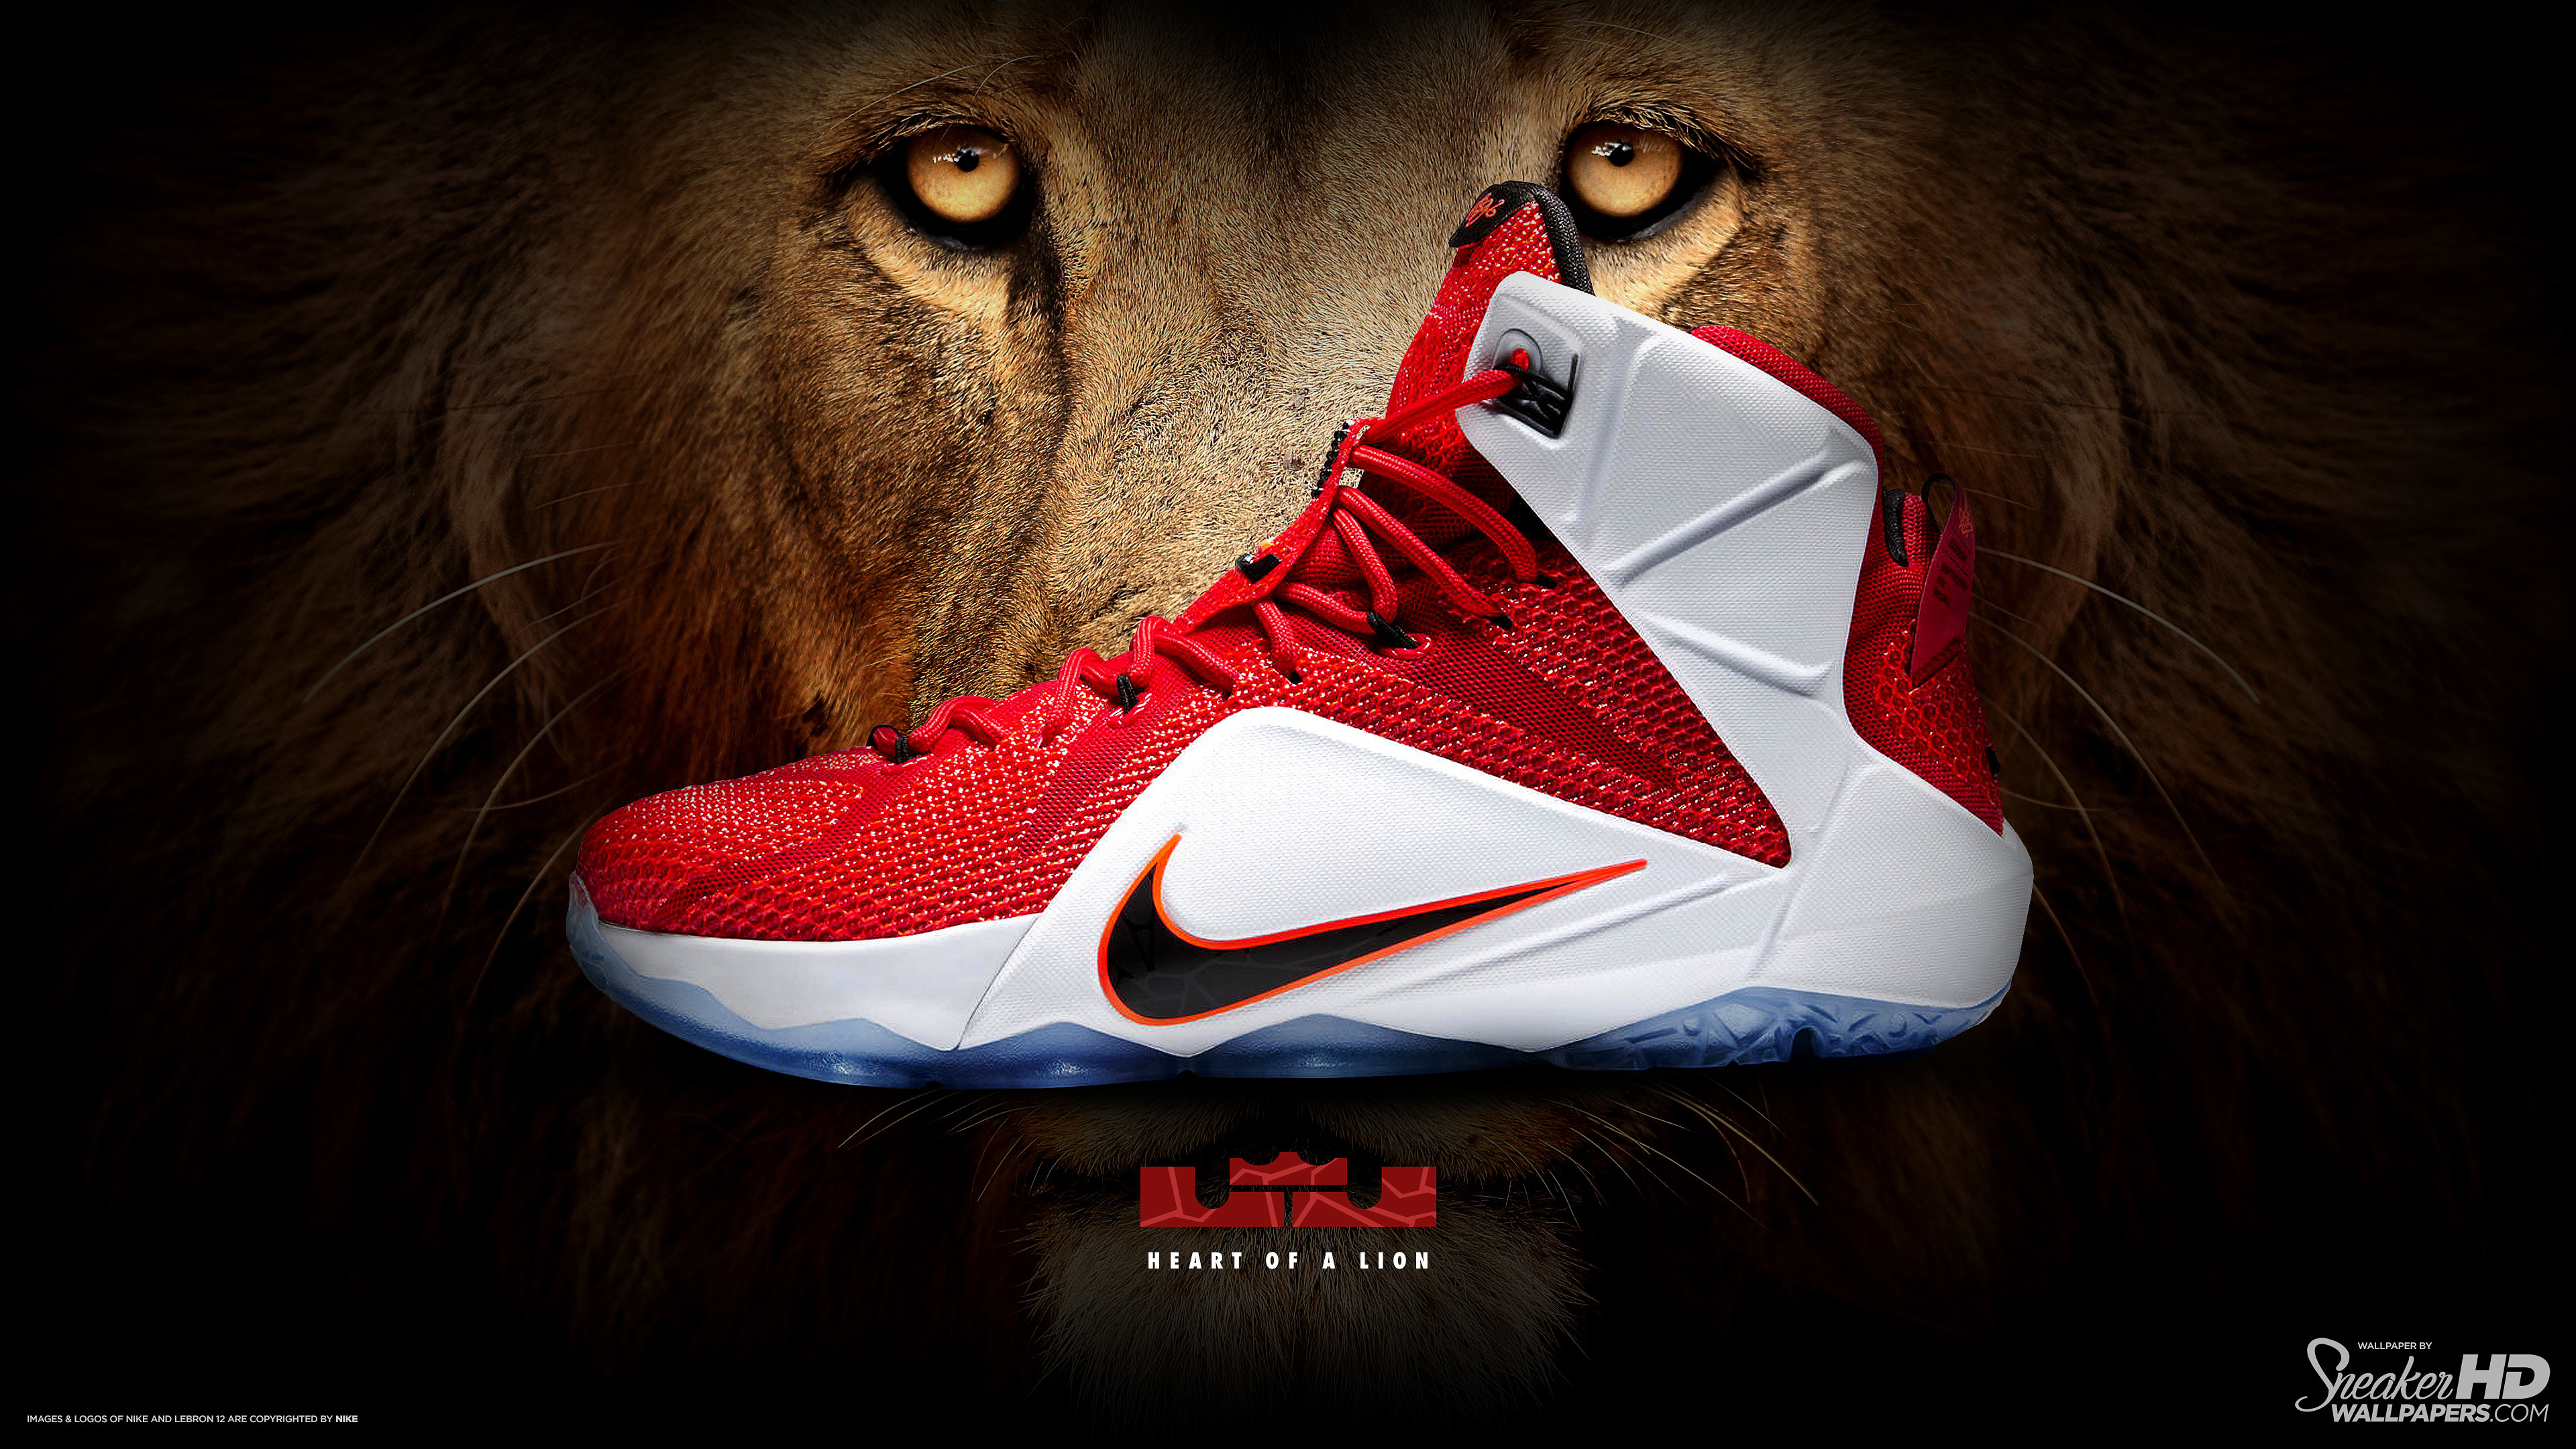 Lebron James Shoes Wallpapers